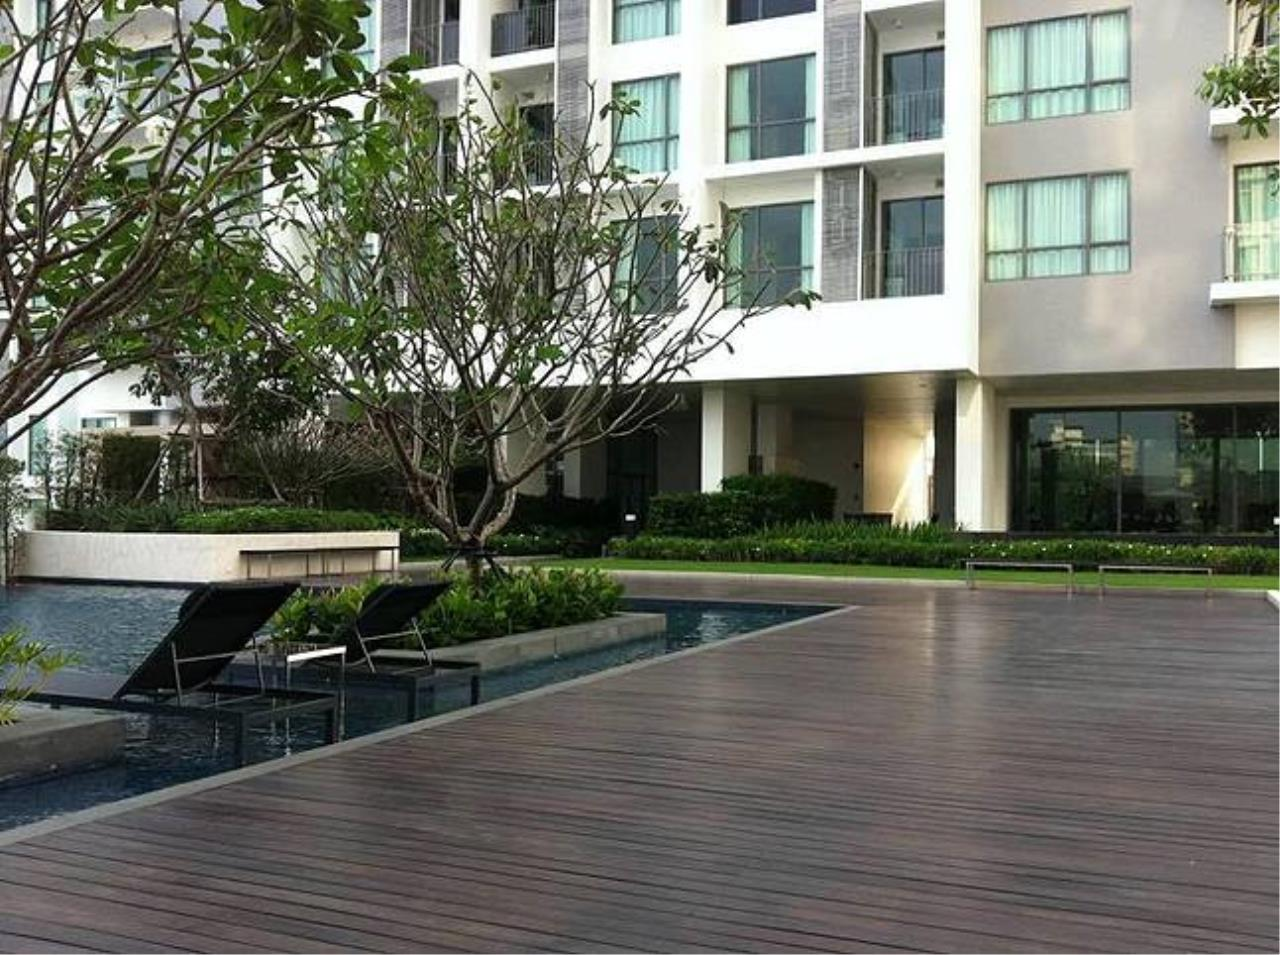 Quality Life Property Agency's S A L E & R E N T ! The Room Sukhumvit 62 | 1 BED 1 BATH | 41.23 SQ. M. 1